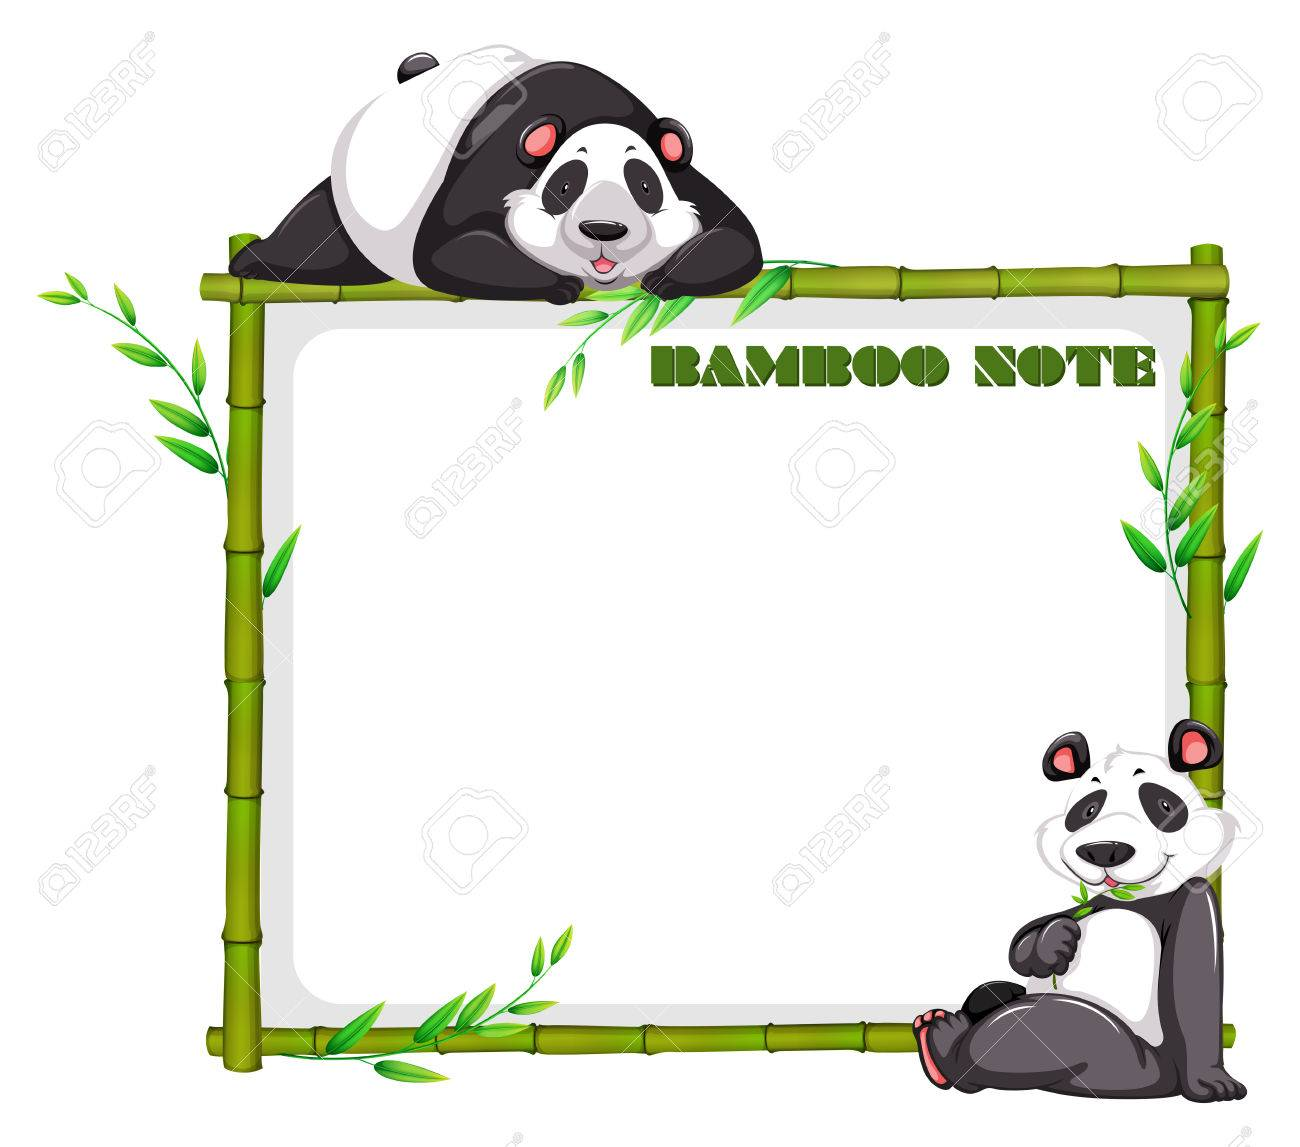 Border Design With Bamboo And Panda Illustration Royalty Free